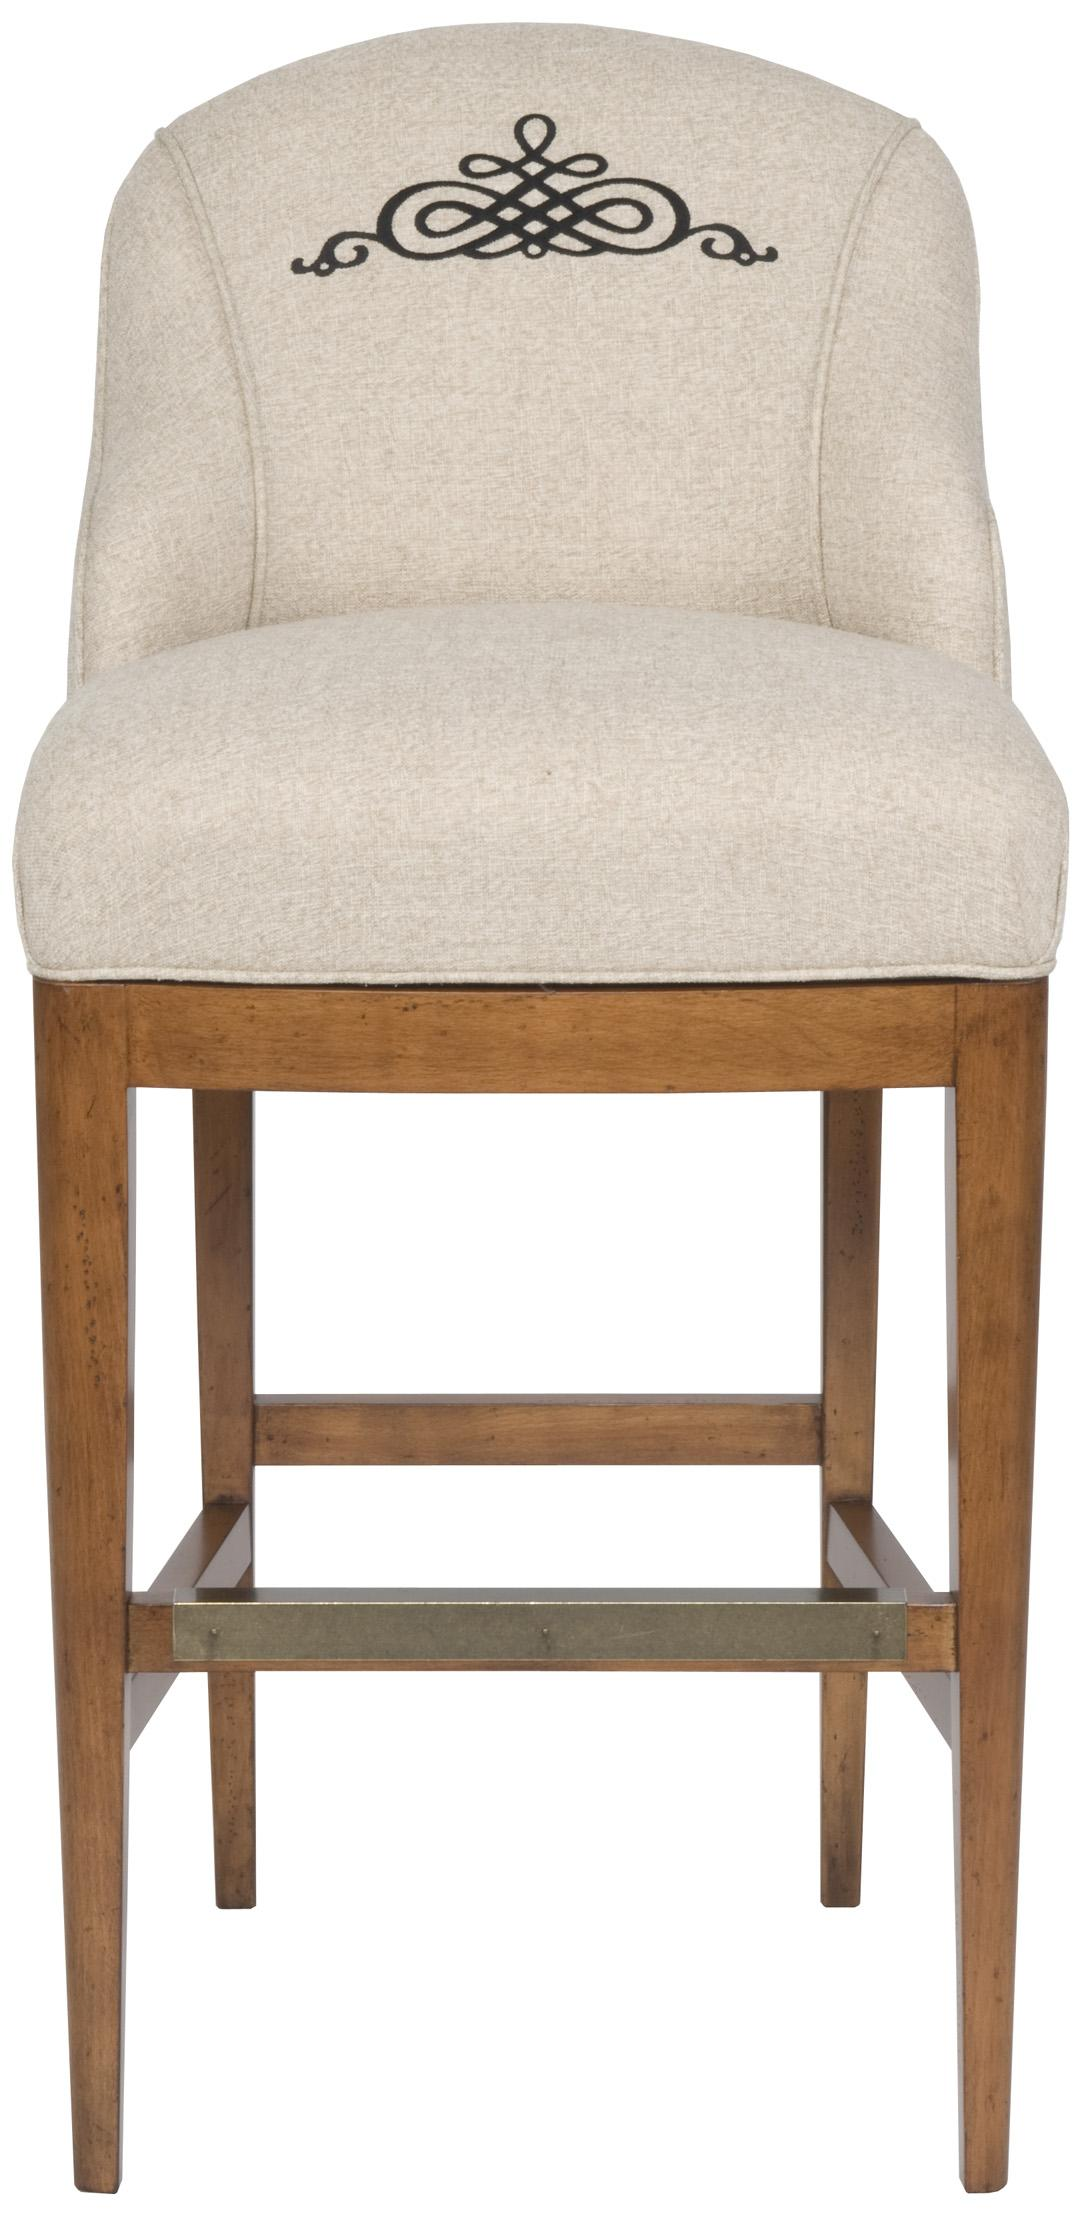 Accent Chairs Bar Stool by Vanguard Furniture at Baer's Furniture